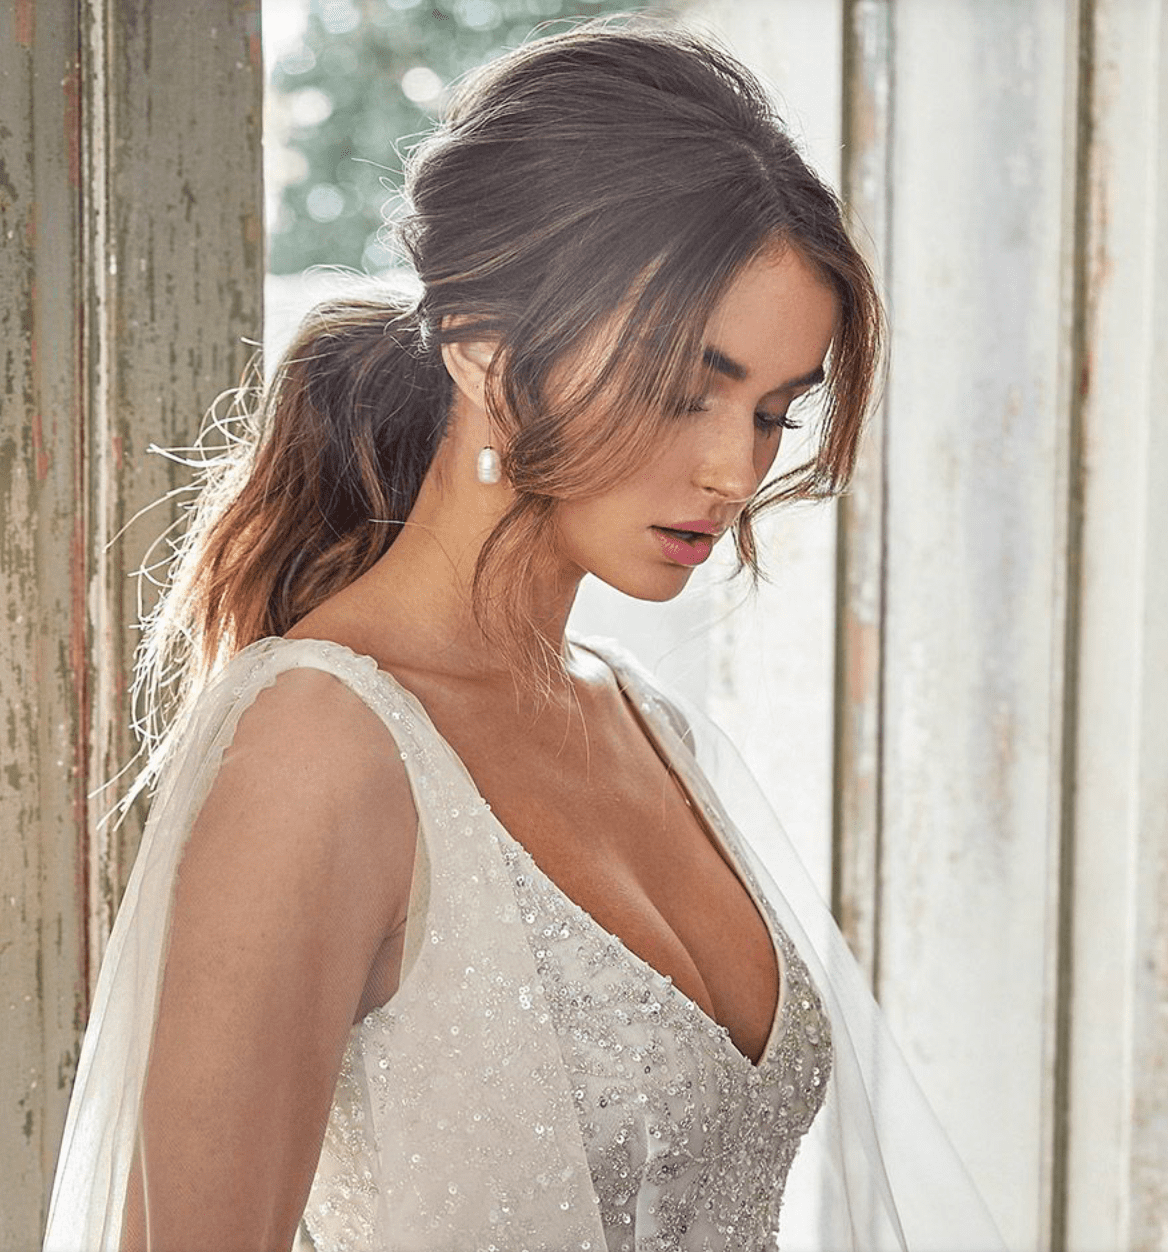 How to Choose the Perfect Hairdresser for Your Wedding?